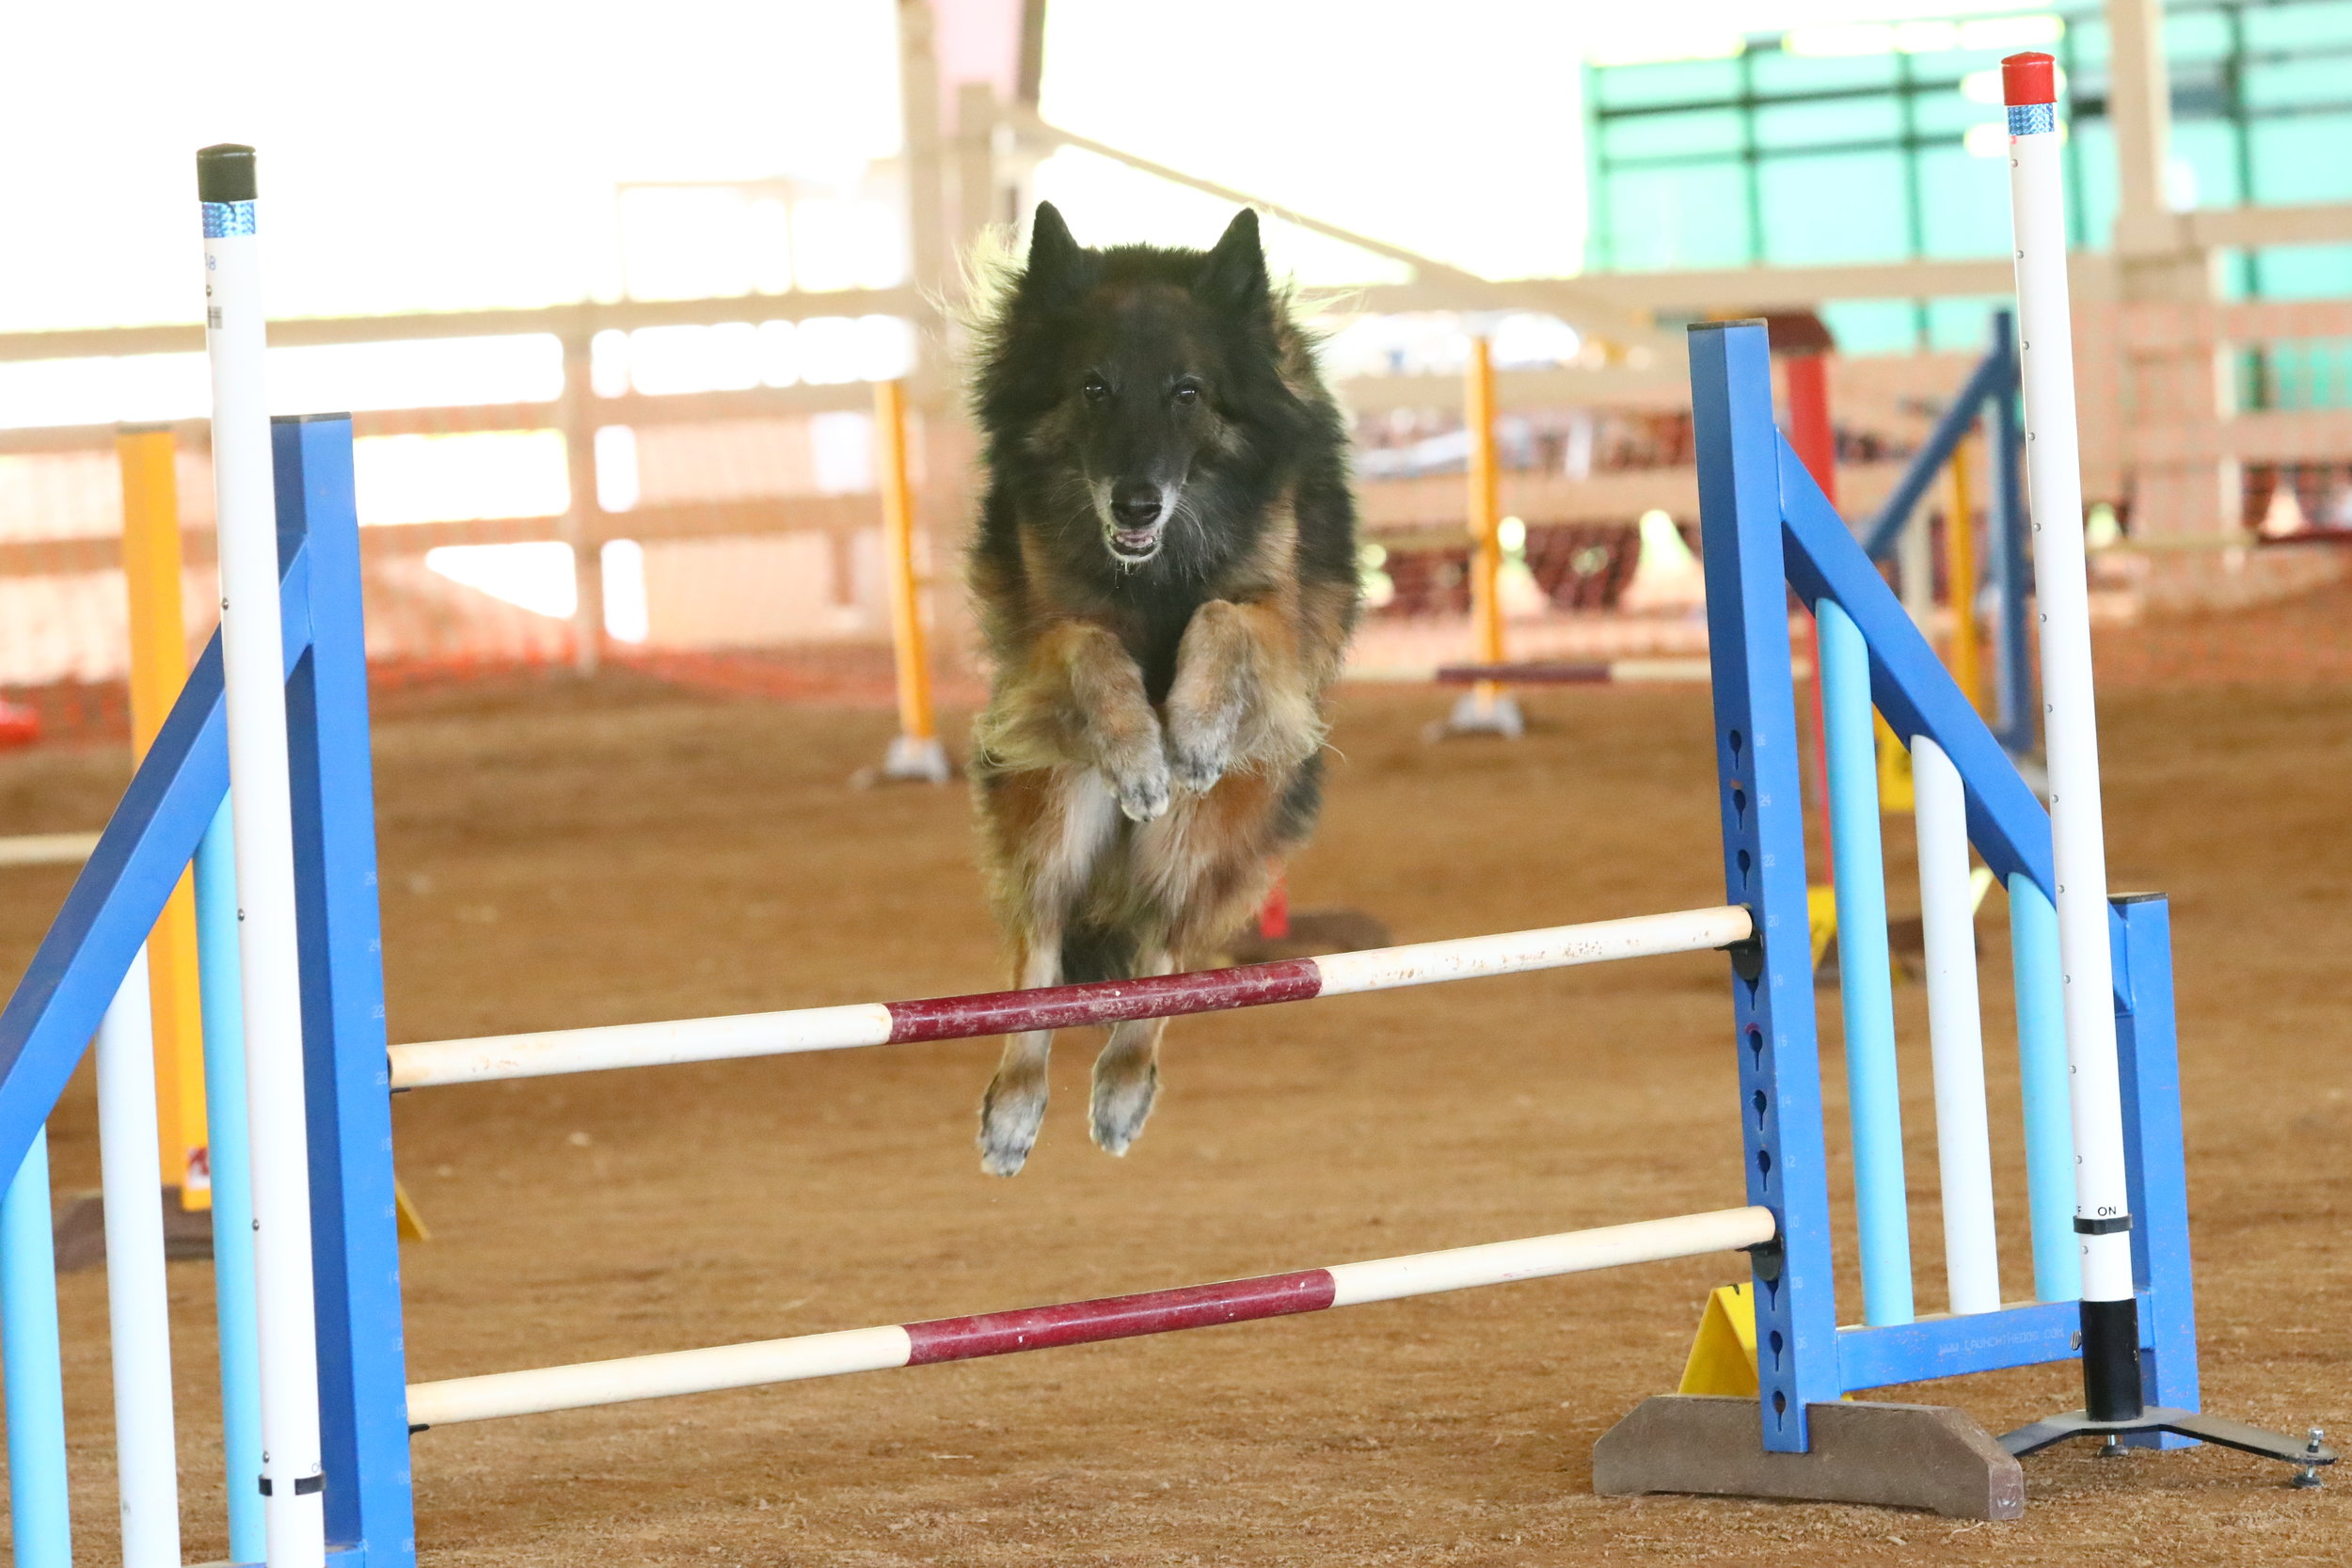 """Cayenne at almost 12 years old is still very fit and active!Good breeding, structure, and an active lifestyle has allowed her to be able to still compete agility at this age!    How fit is your dog? Having a fit, in shape dog is really important for your dog's health, not only physically but mentally as well. So what are some ways to get your dog fit? And what are things to keep in mind?  **Make sure your dog is healthy enough for the activities you are planning! If you are uncertain talk to your vet. Maybe your dog has an injury that limits what type of activity they can do, or you have a puppy, or a senior dog that is slowing down. But there are ways to keep most dogs active; it might just take some creative ideas!  ** Pay attention to the weather! Especially if you have a breed that will be more affected by the weather. For example, our brachycephalic breeds (pugs, boxers, """"flat faced"""" breeds) do not handle the heat as well-so use caution! But any dog can get heat stroke easily, so keep this in mind. If you are going to exercise in the hot weather, go early in the morning or later evening. Make sure you give your dog breaks and water. And watch them closely for signs of heat exhaustion.  **Have a puppy-then remember until they are full grown (which in some breeds is 1-2 years), that they should not have forced exercise. But that doesn't mean they don't need activity to help their joints and bones develop. What are some things that are good for puppies? Playing chase in the backyard, slow walks where they can sniff and amble, slow hikes where they have to climb small rocks/different terrain, playtime with other (not too rough) dogs, and low key swimming.  **Have a senior dog? Make sure your vet has cleared any activities they are doing. But keeping these seniors active is so important! They may go slower and shorter distances, but mentally and physically it is great for them to be out there doing things. Swimming, slow walks, and short hikes can be great for the s"""